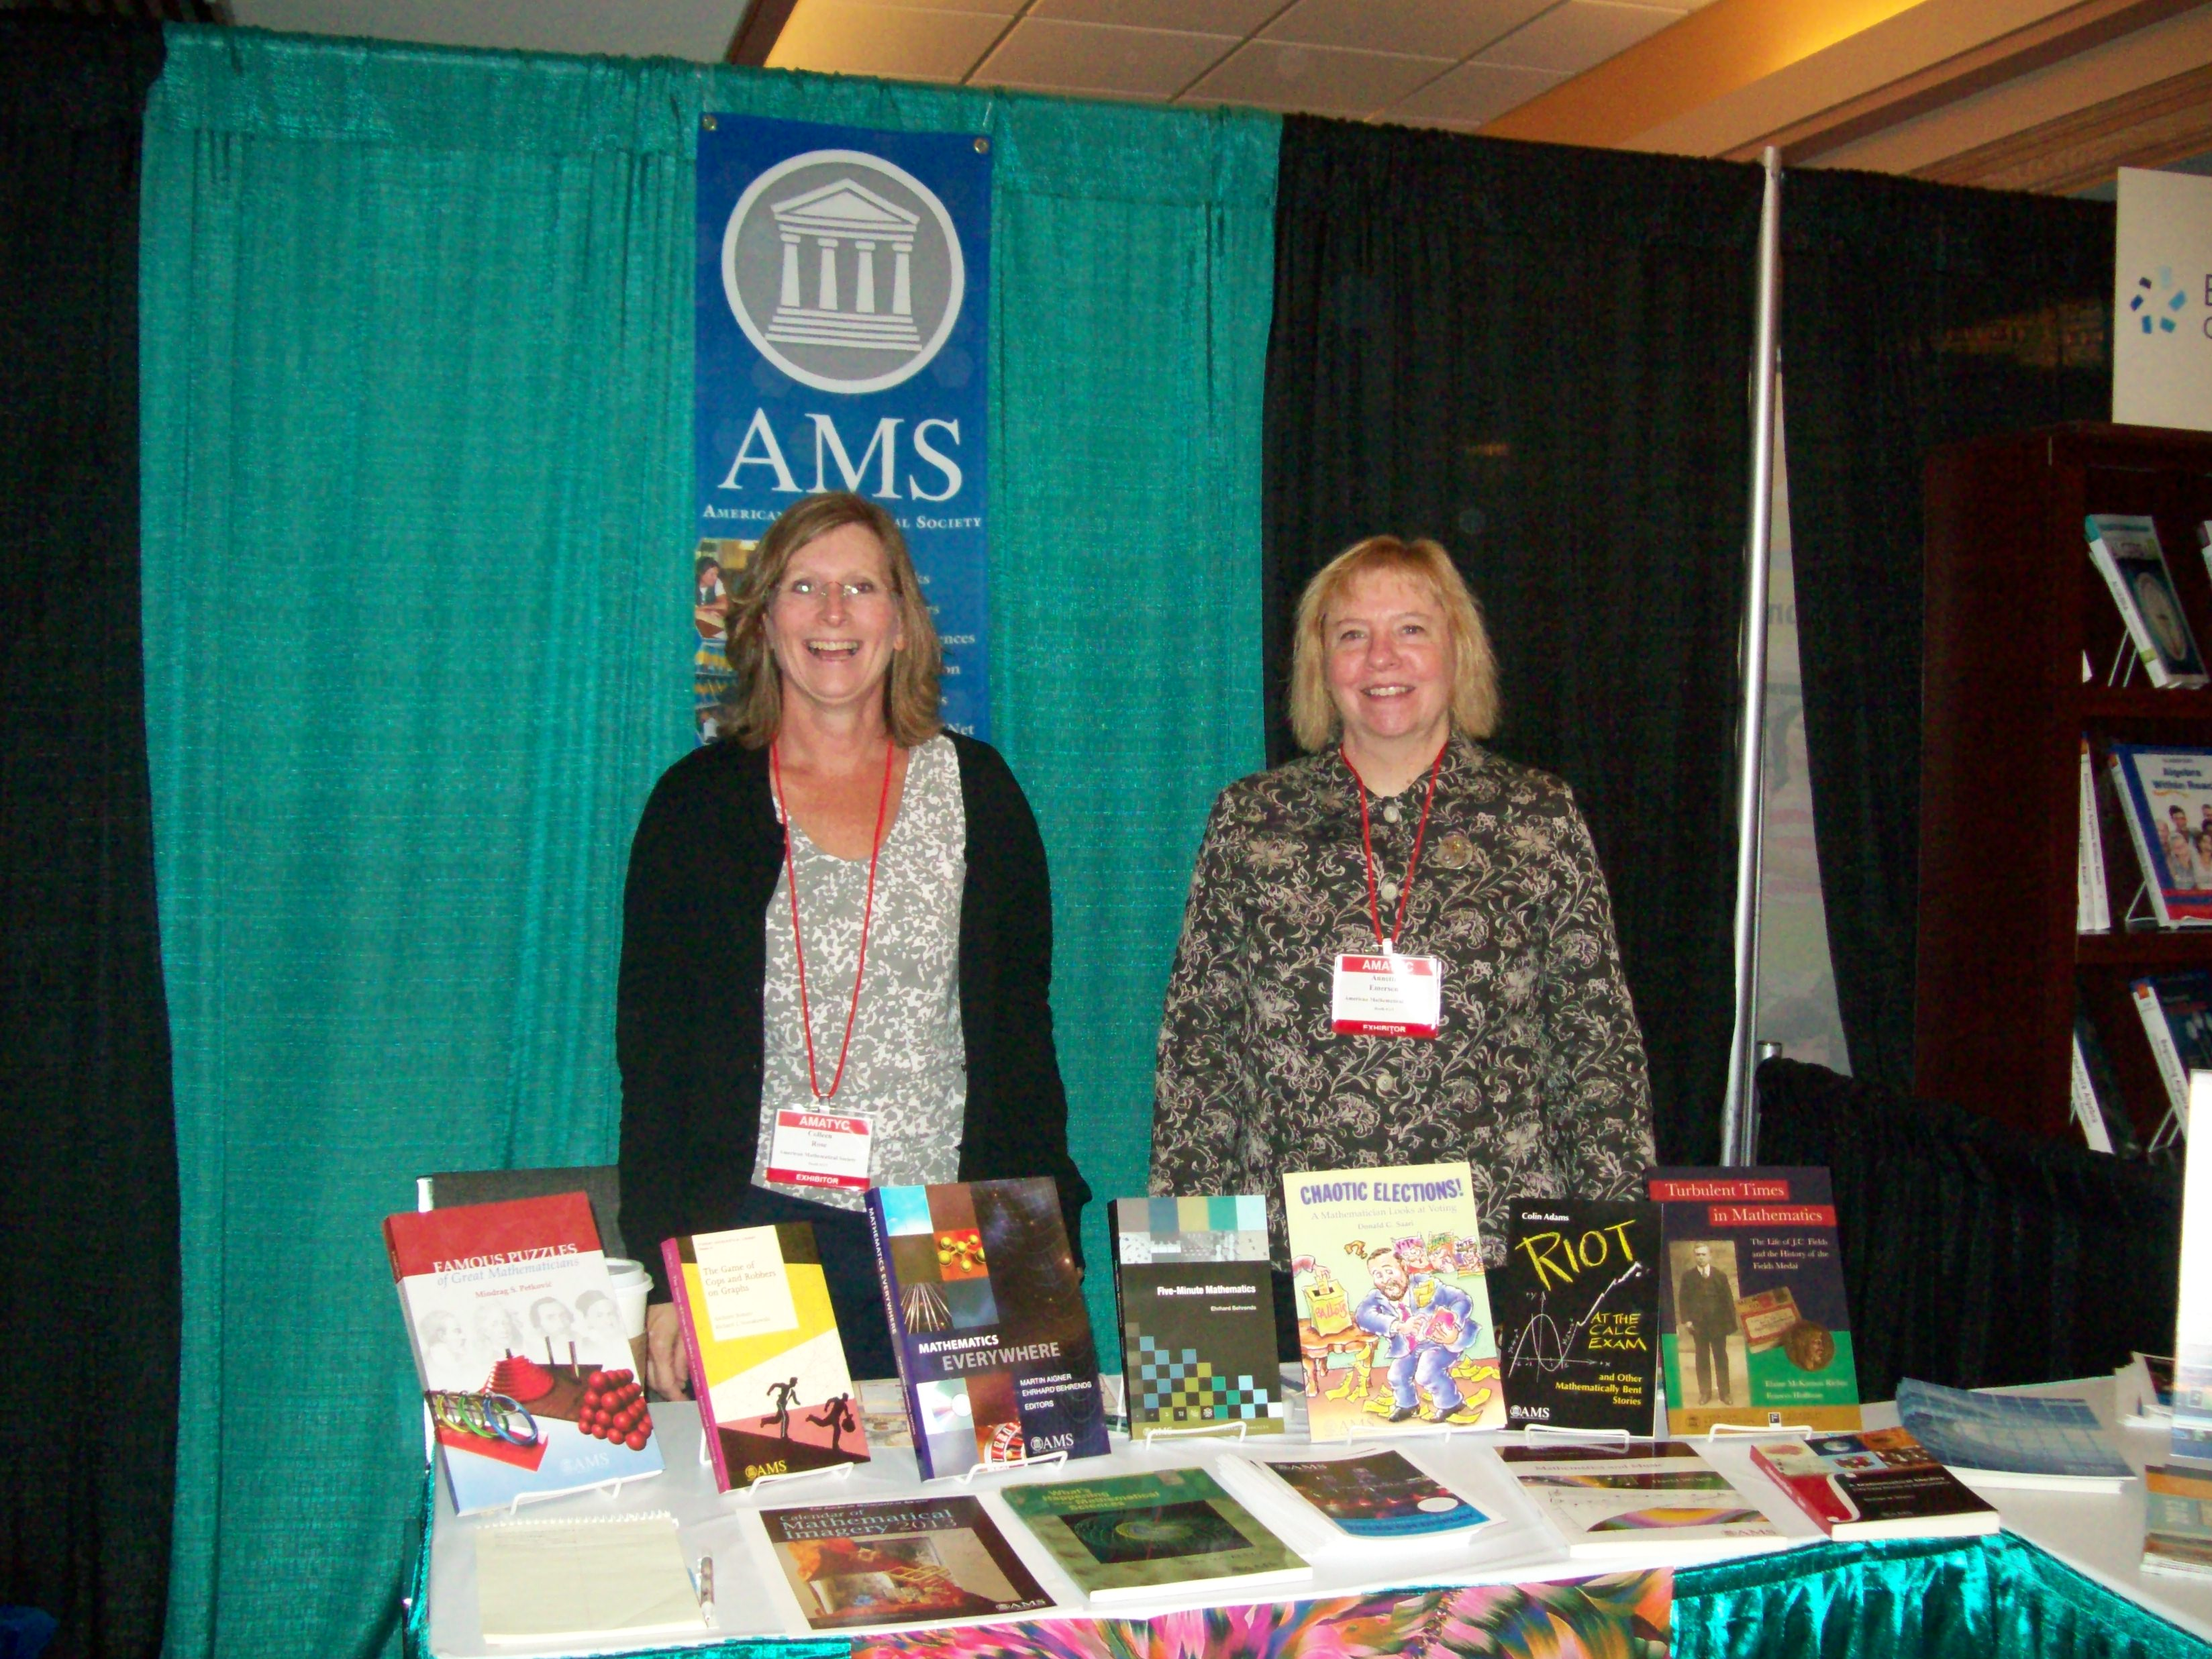 AMS exhibit at AMATYC 2012